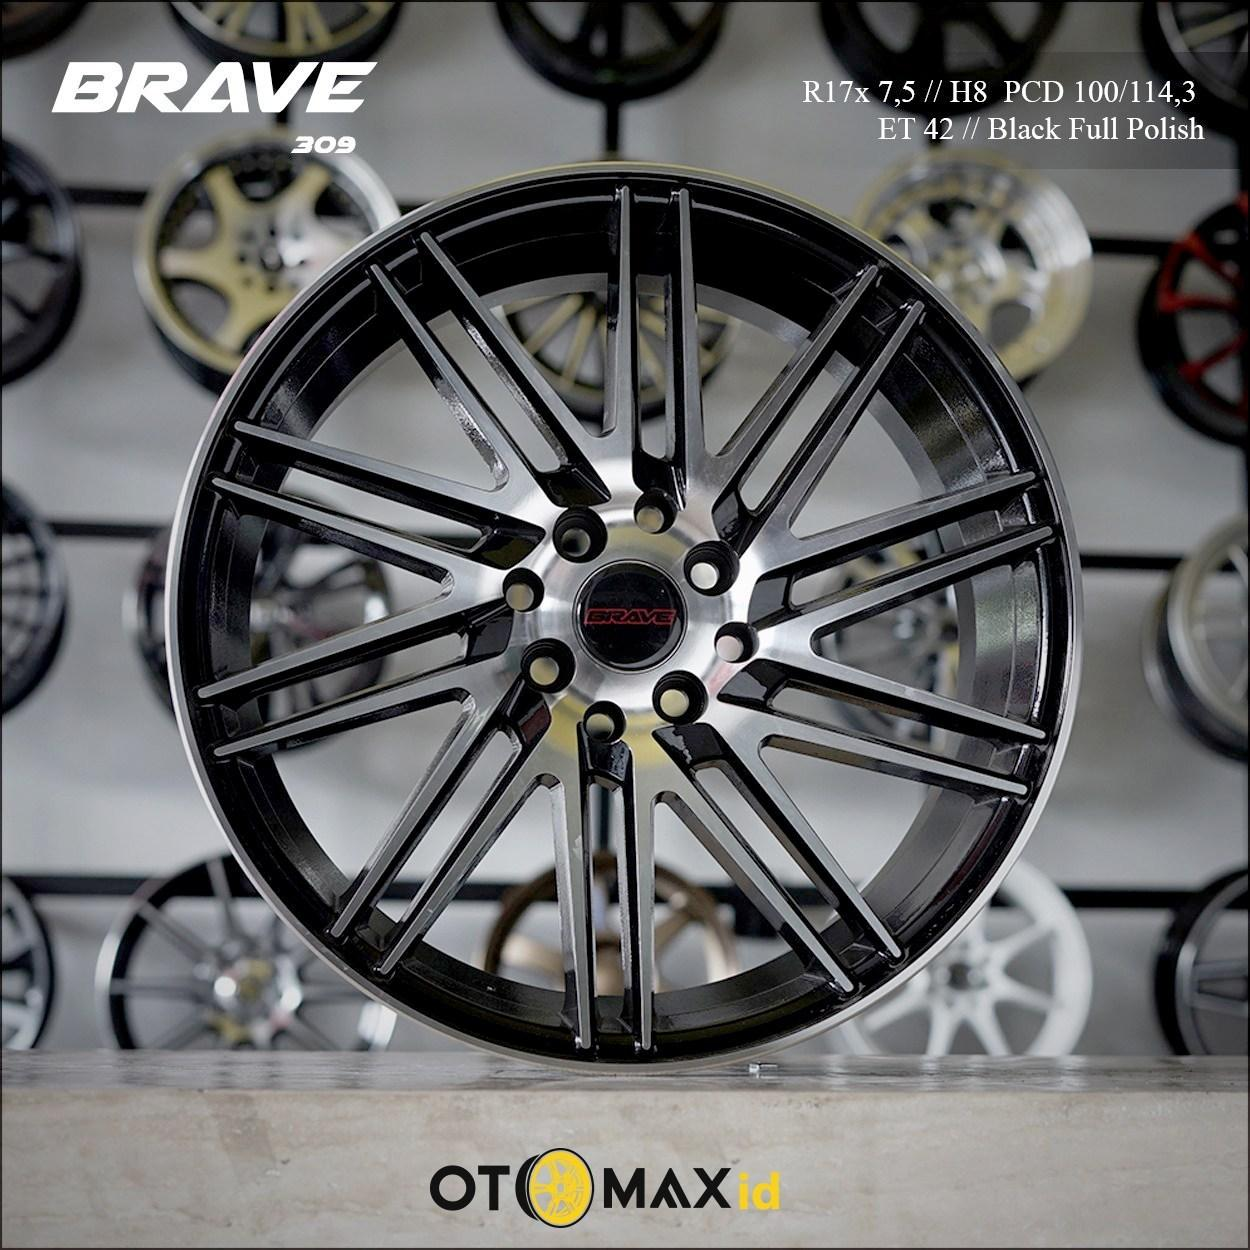 Velg Mobil Brave 309 Ring17 Black Full Polish